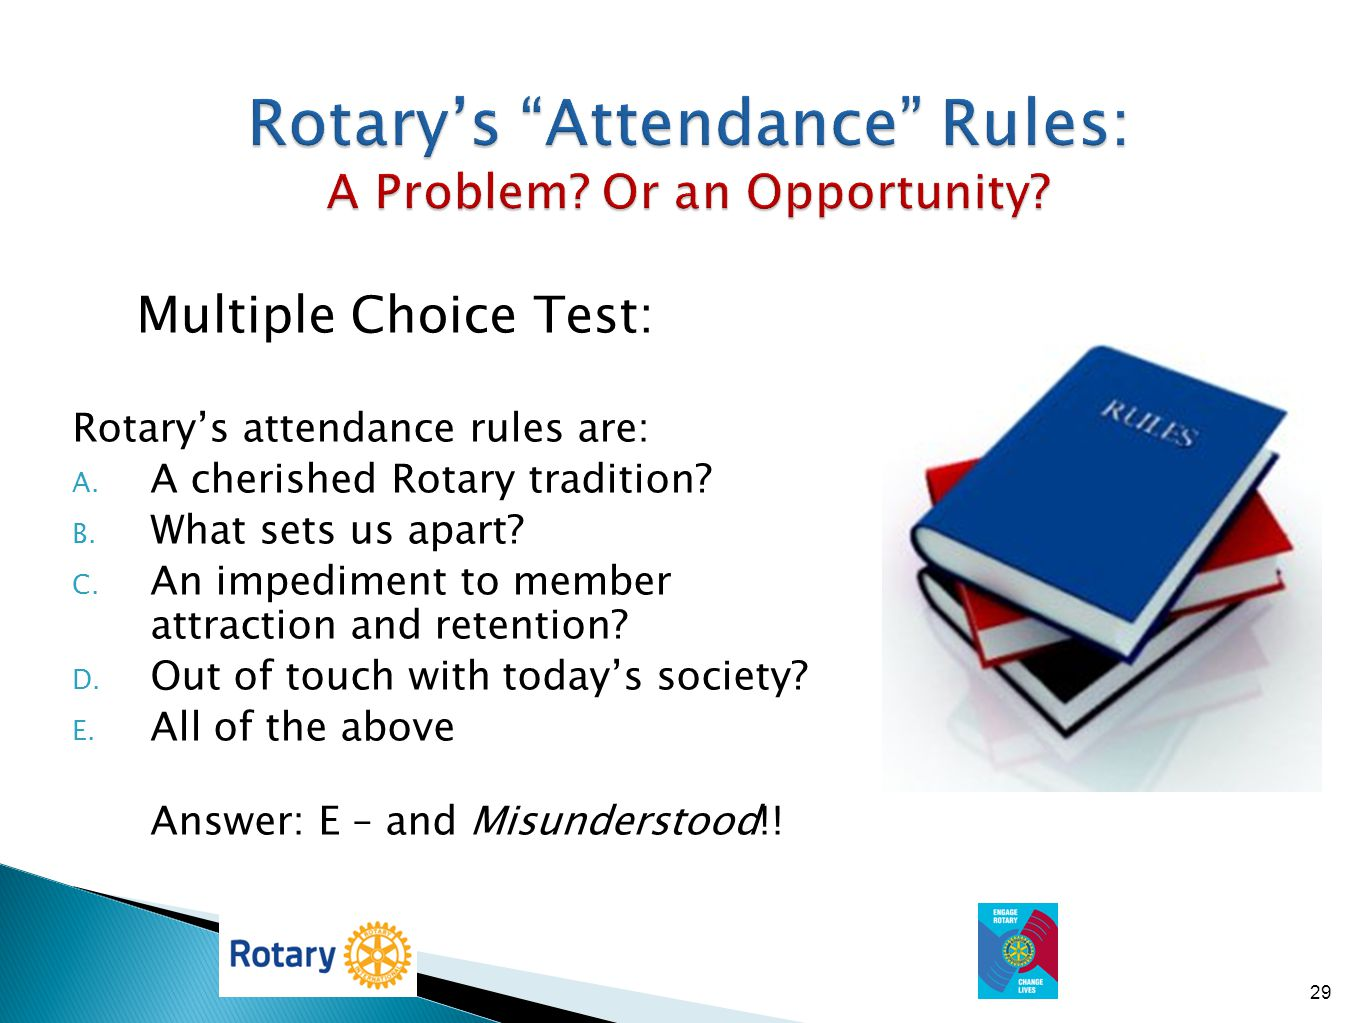 Rotary's Attendance Rules: A Problem Or an Opportunity